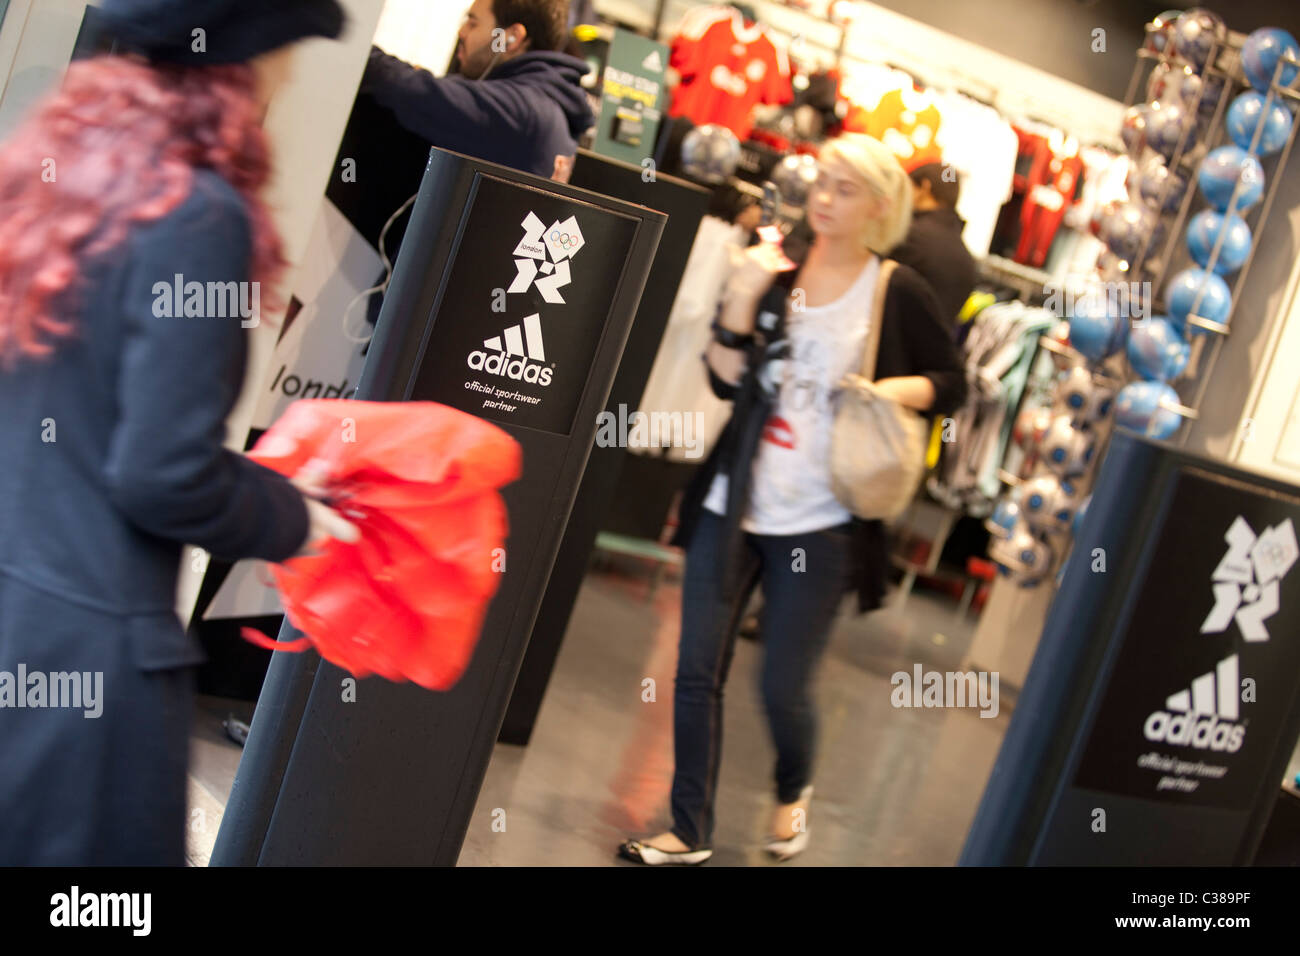 The entrance to an Adidas store in Central London. - Stock Image